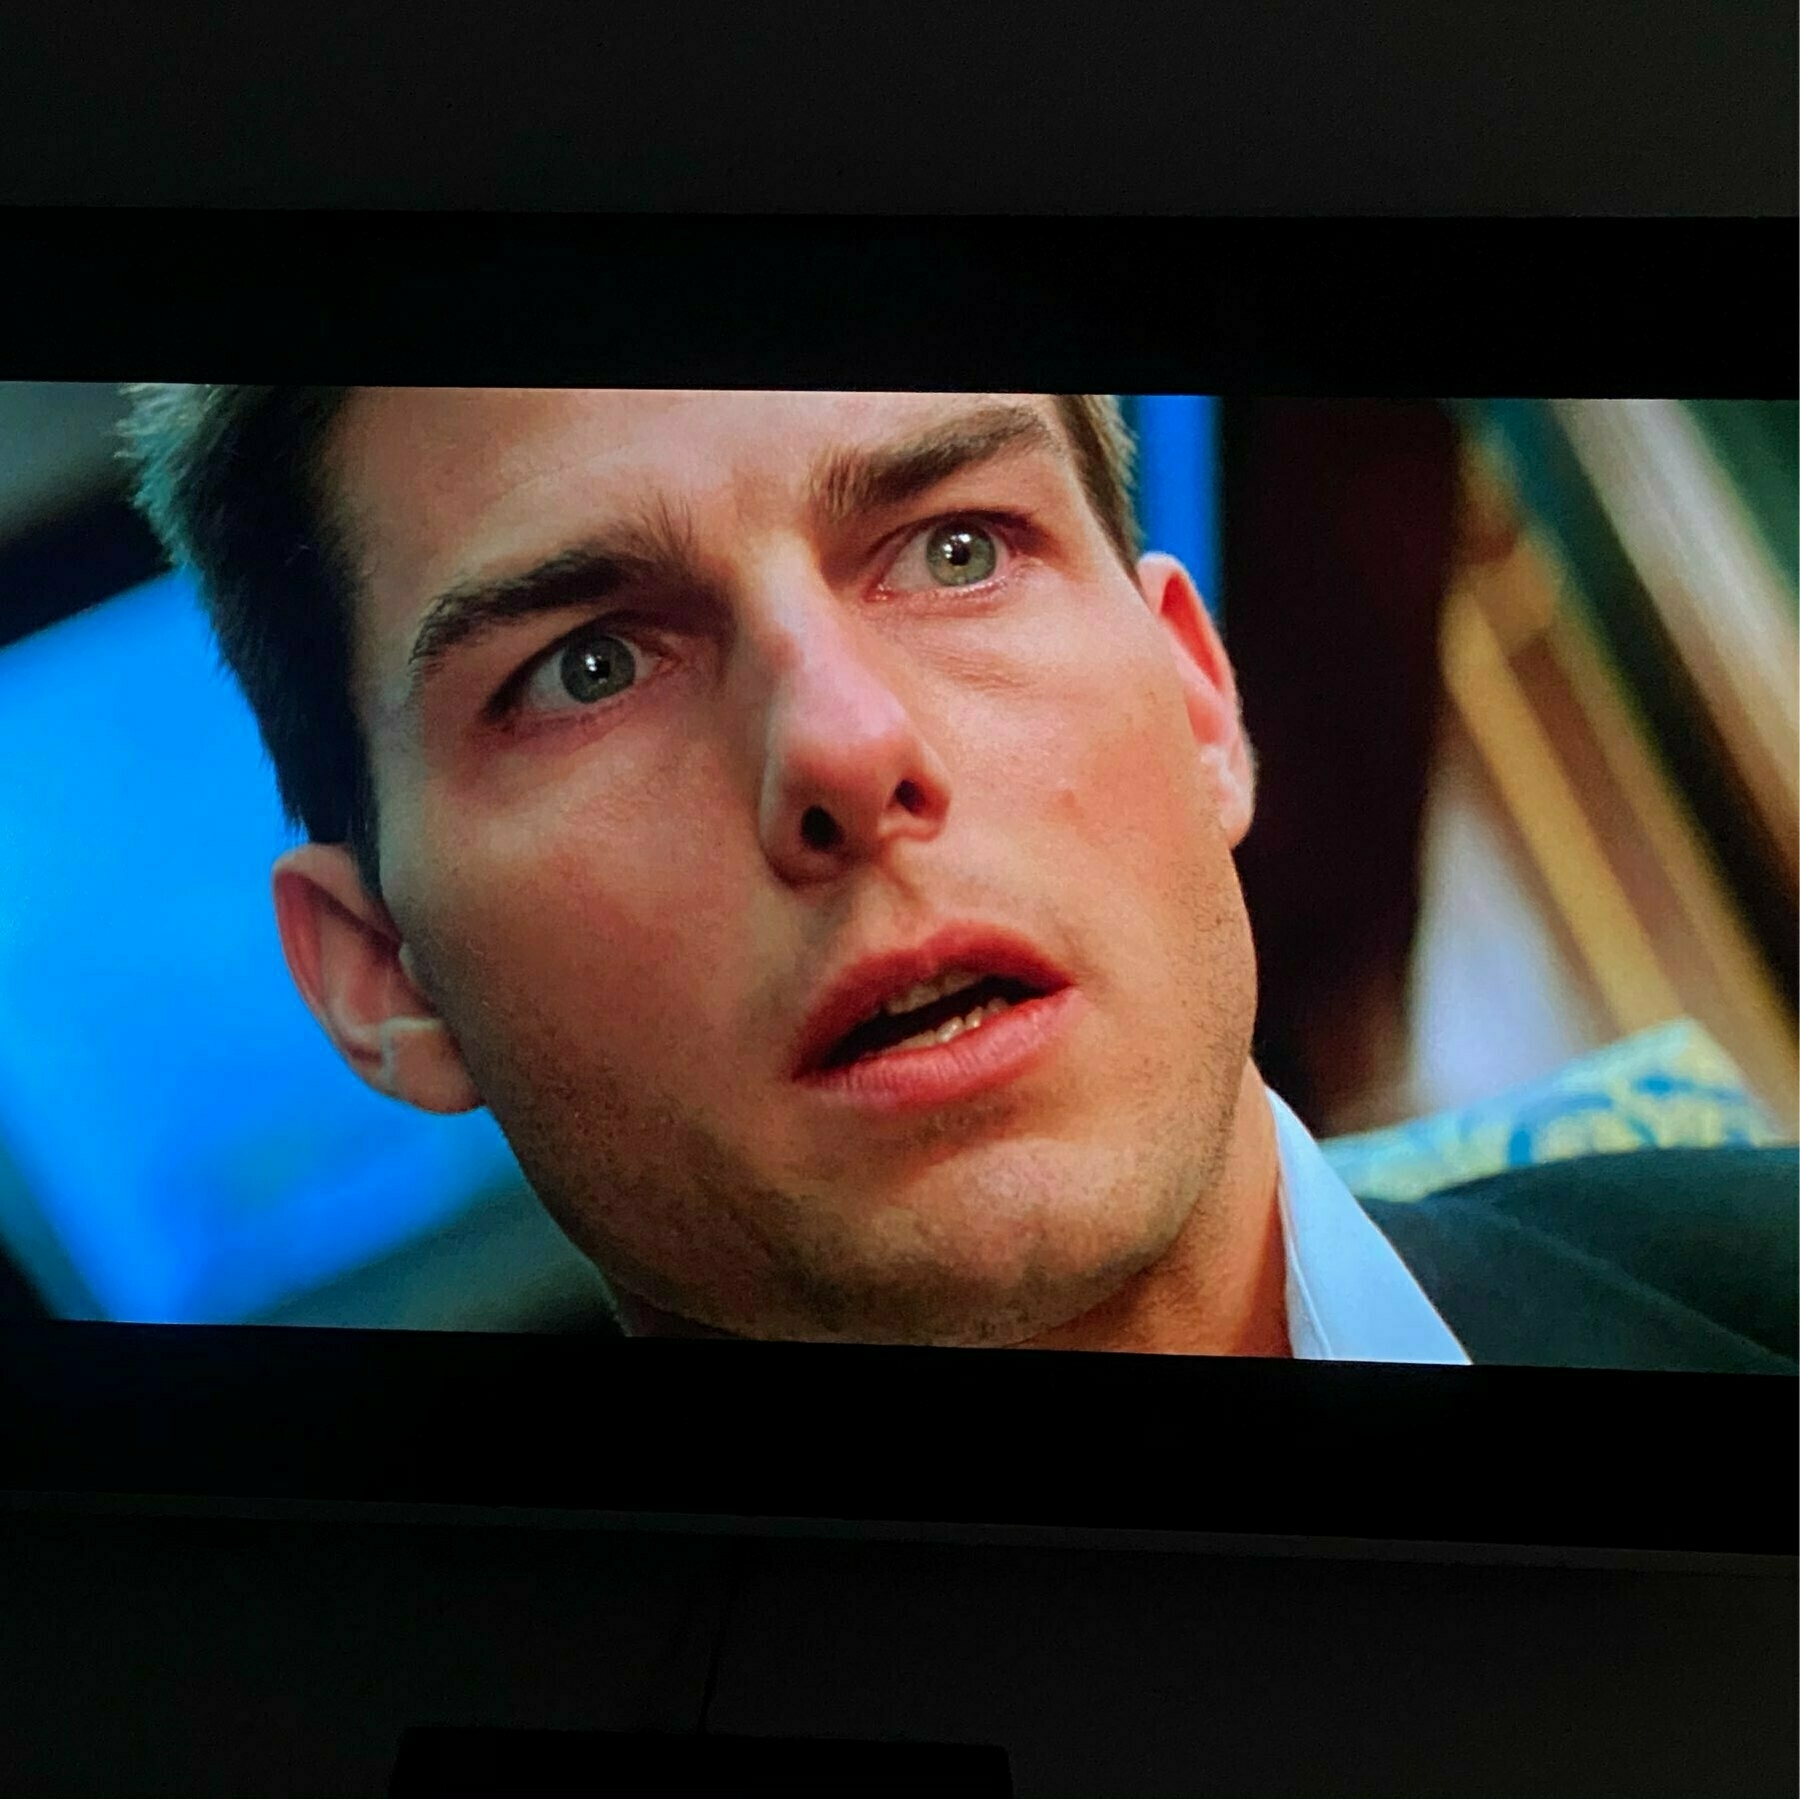 Actor Tom Cruise on screen